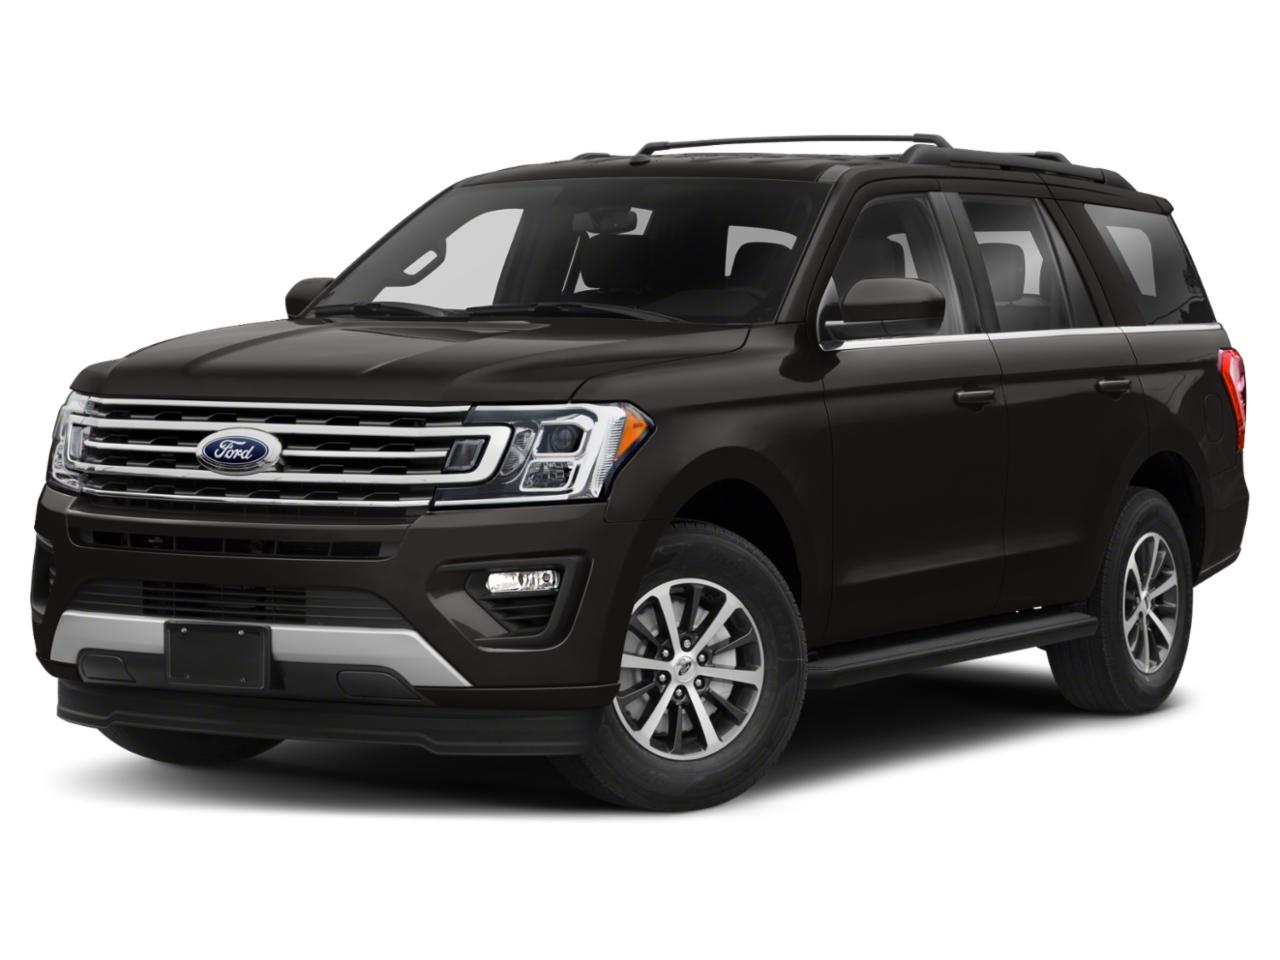 2018 Ford Expedition Vehicle Photo in Brockton, MA 02301